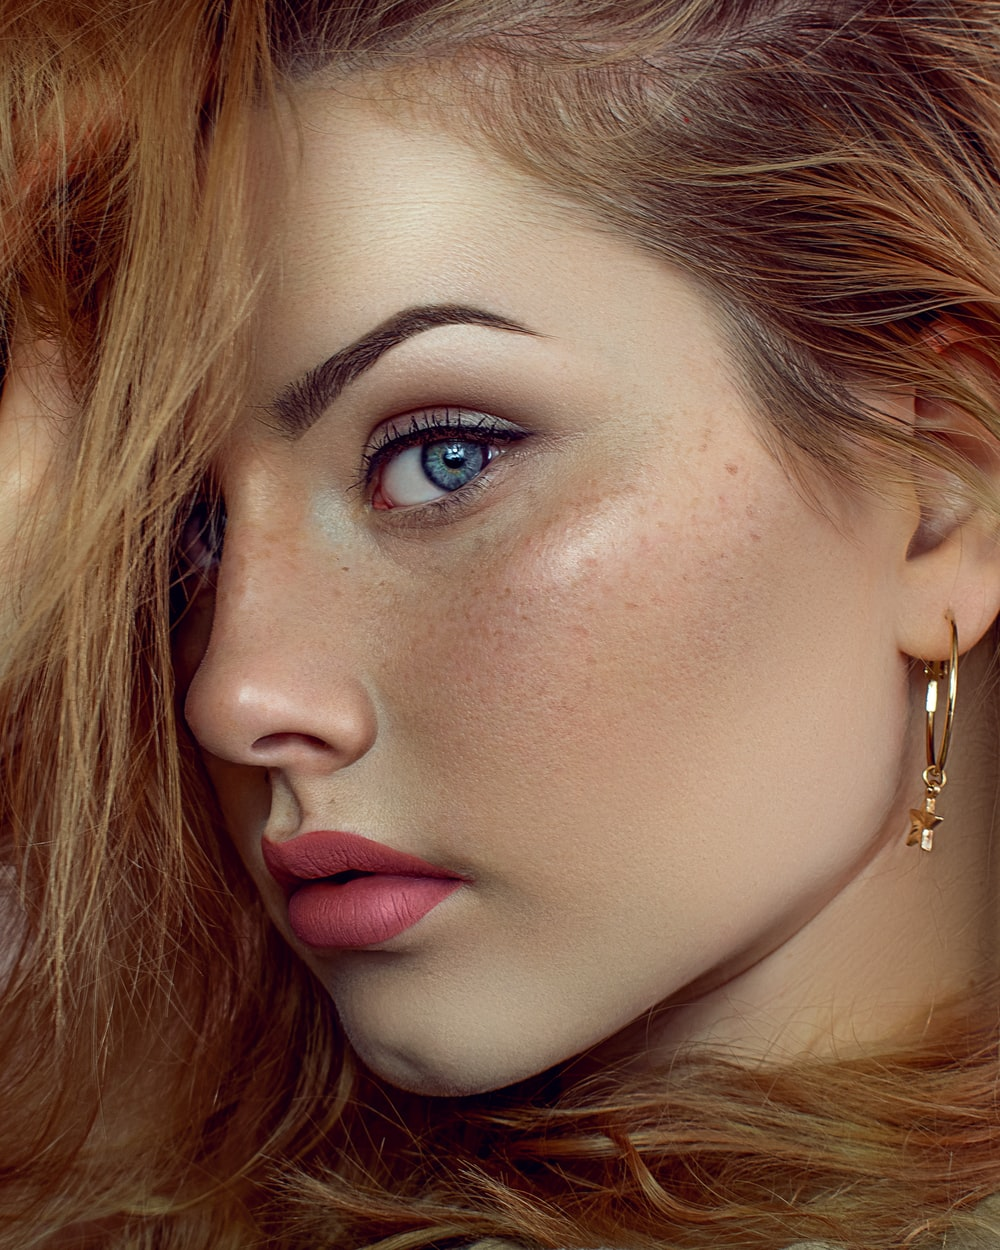 woman with brown hair wearing gold earrings